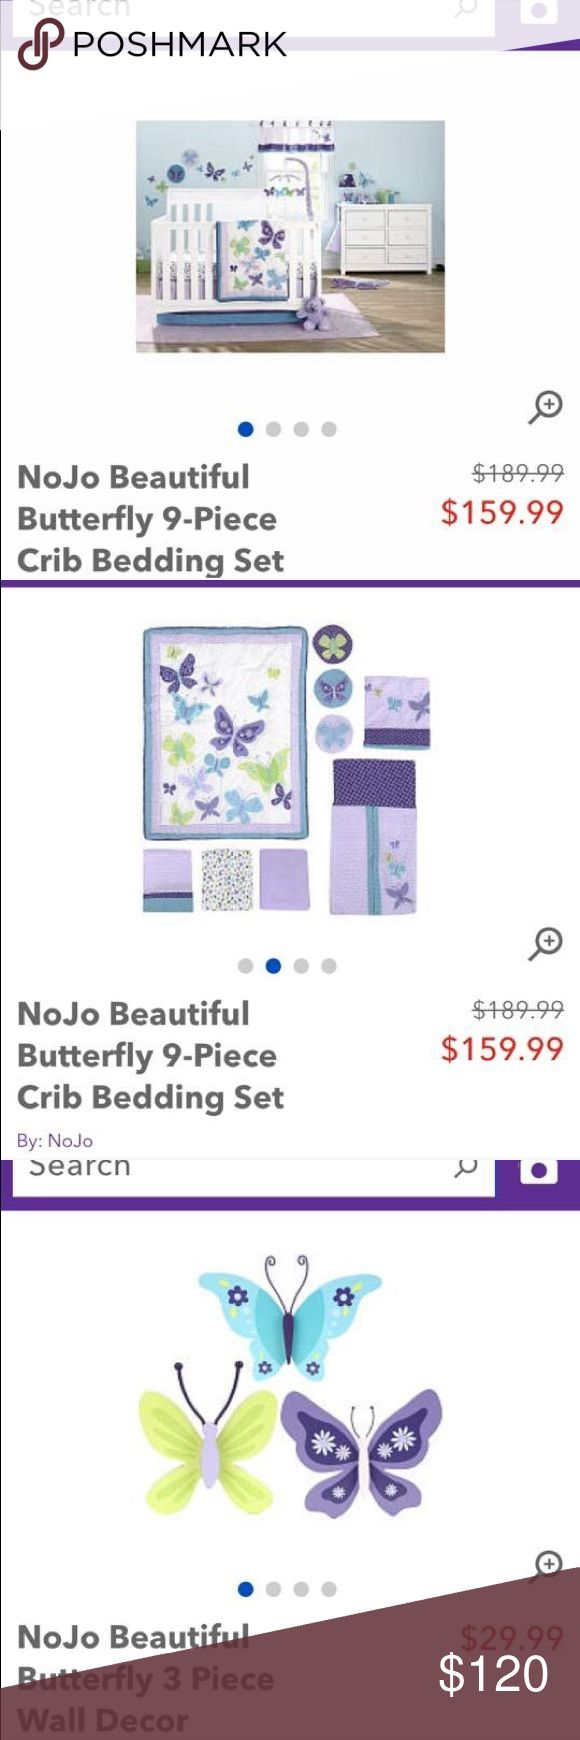 Bumper for crib for sale - Nojo Beautiful Butterfly Crib Bedding Set